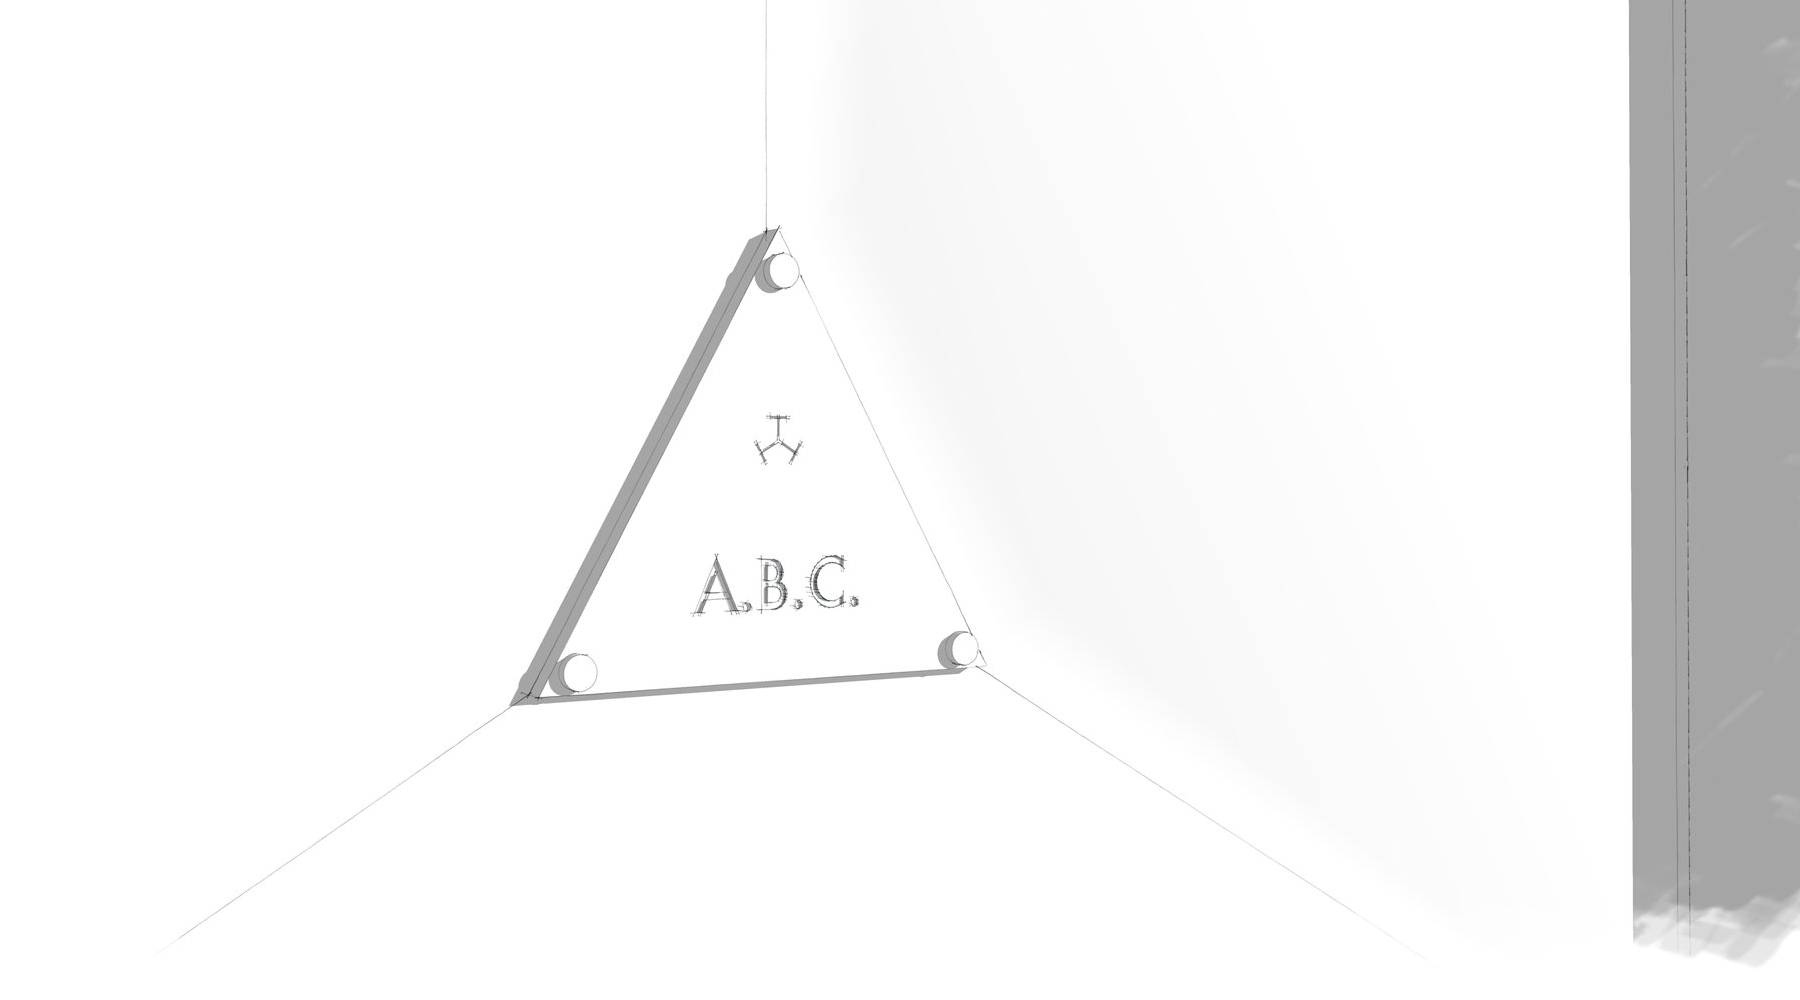 CHOOSE YOUR INITIALS - The central plaque of your product can be engraved with your initials.Indicate in the form below the chosen initials.